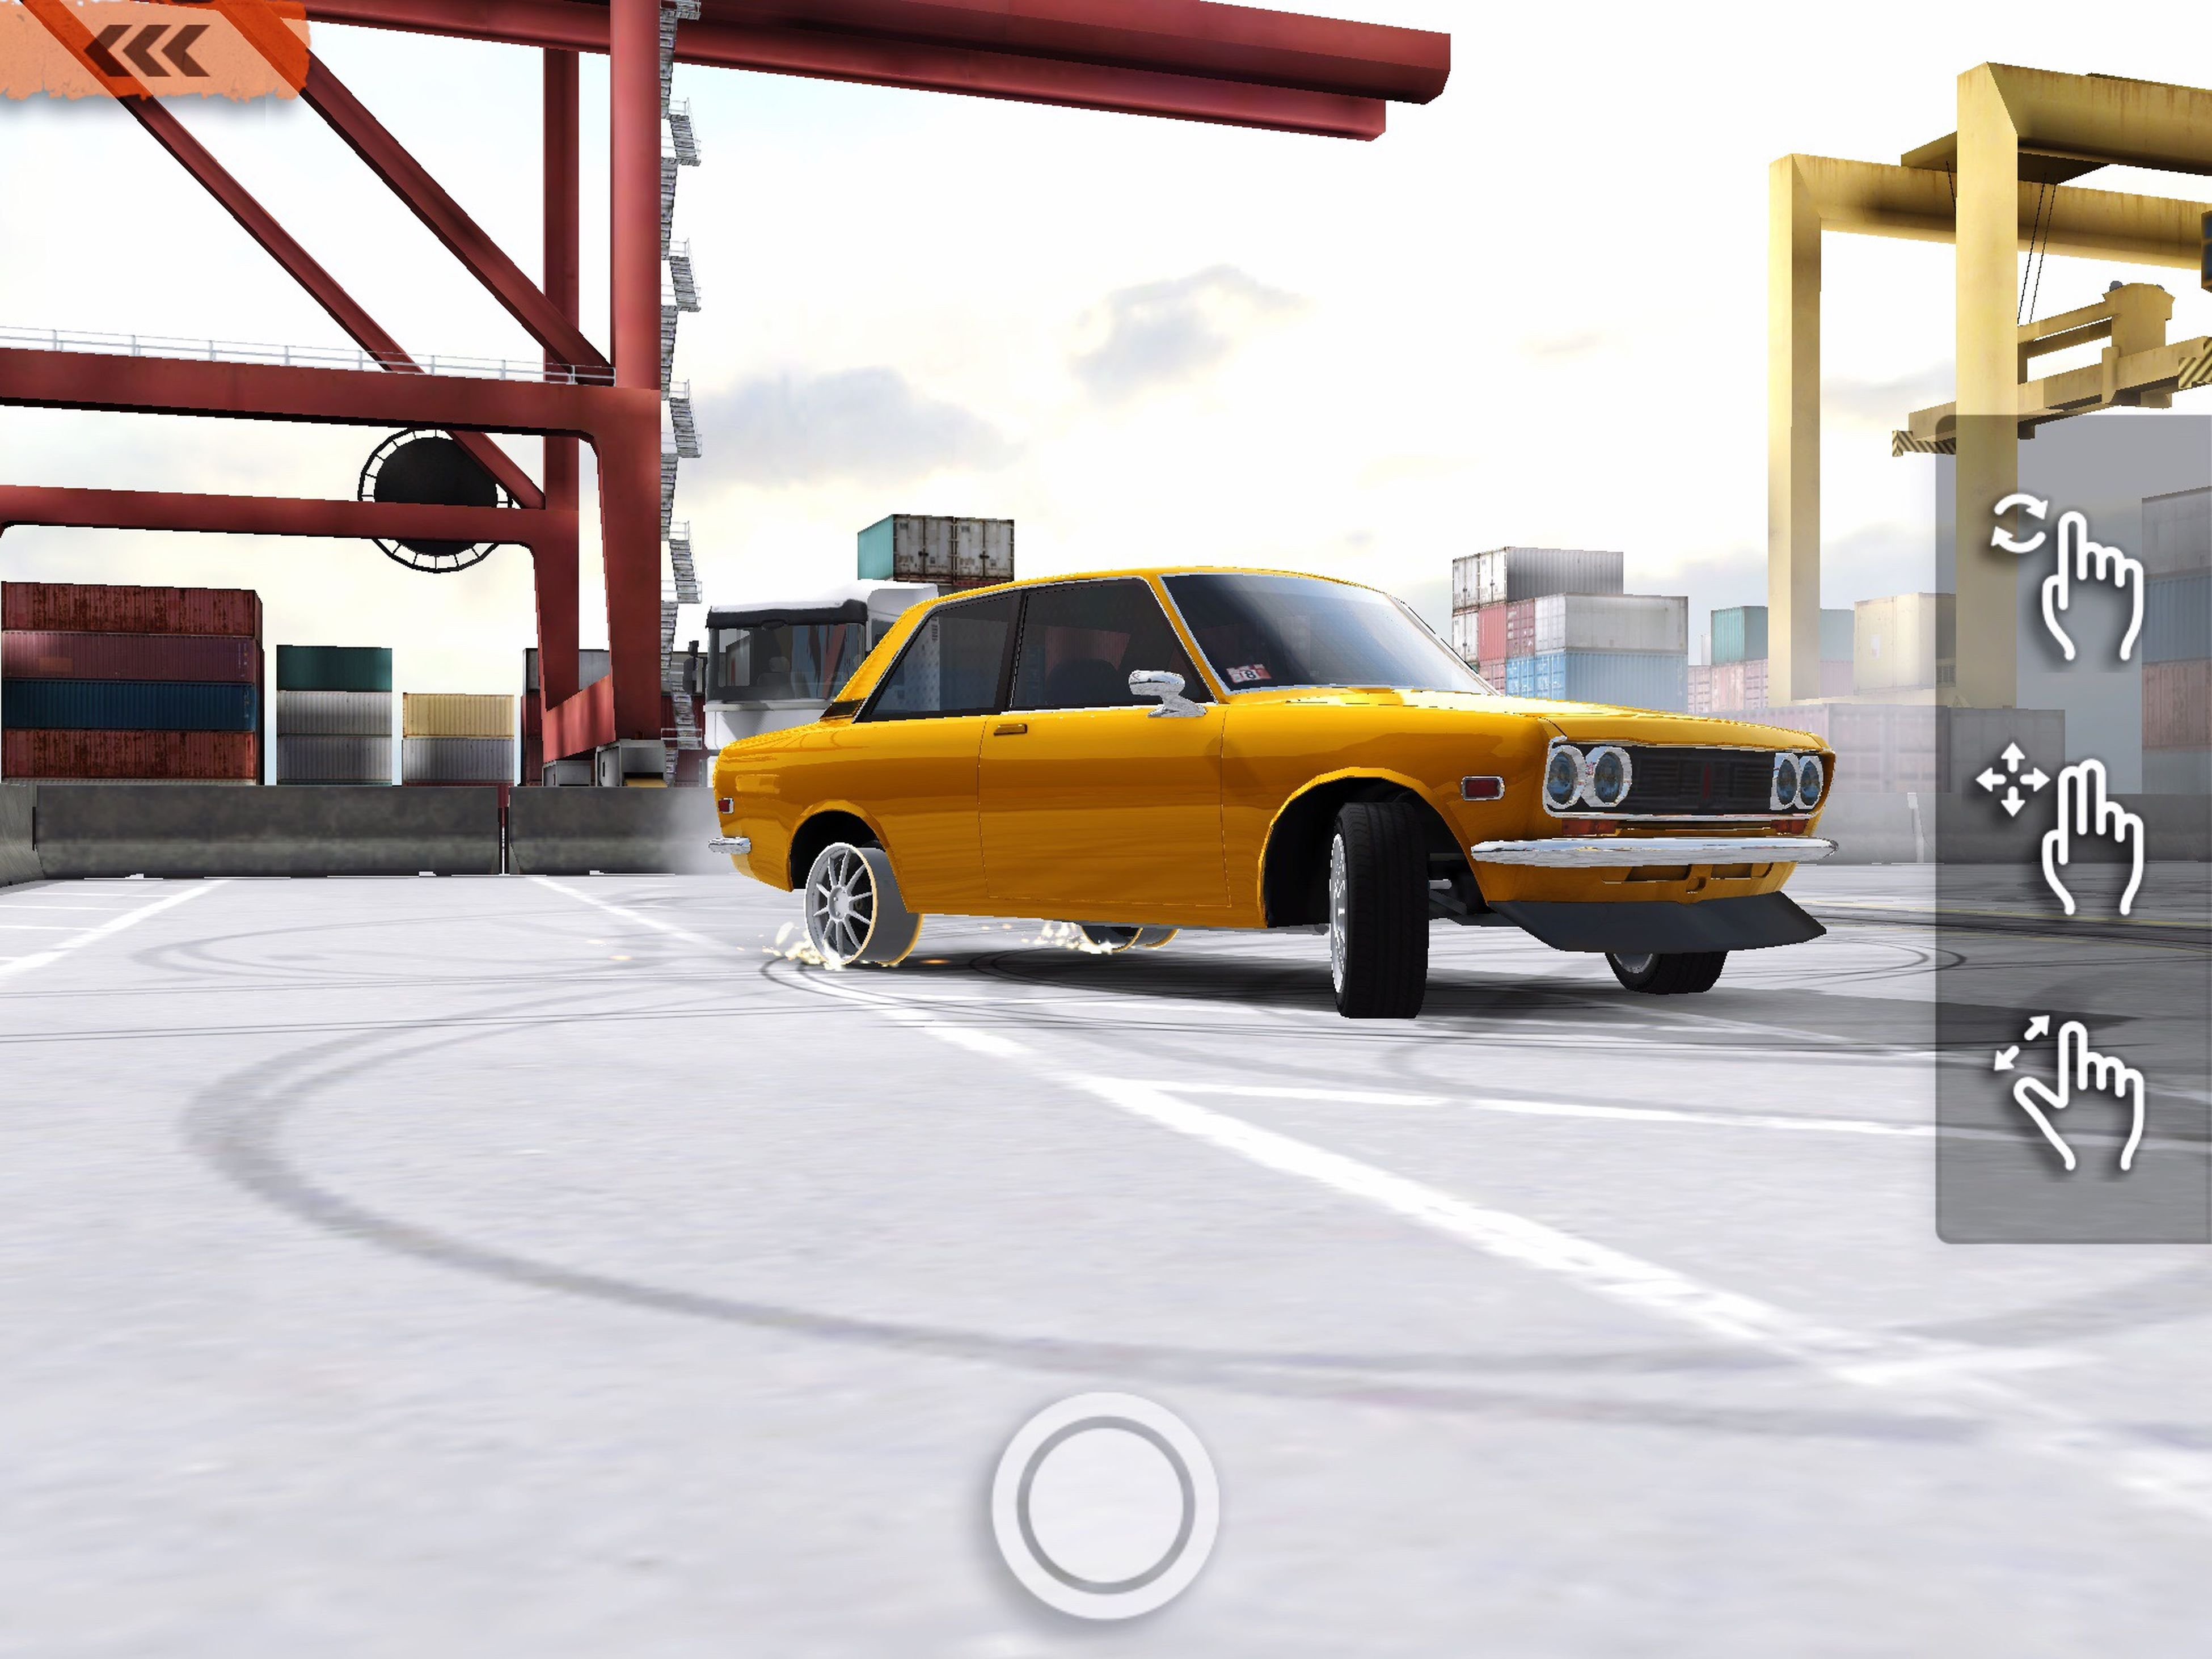 taxi, car, yellow taxi, transportation, city, driving, no people, day, outdoors